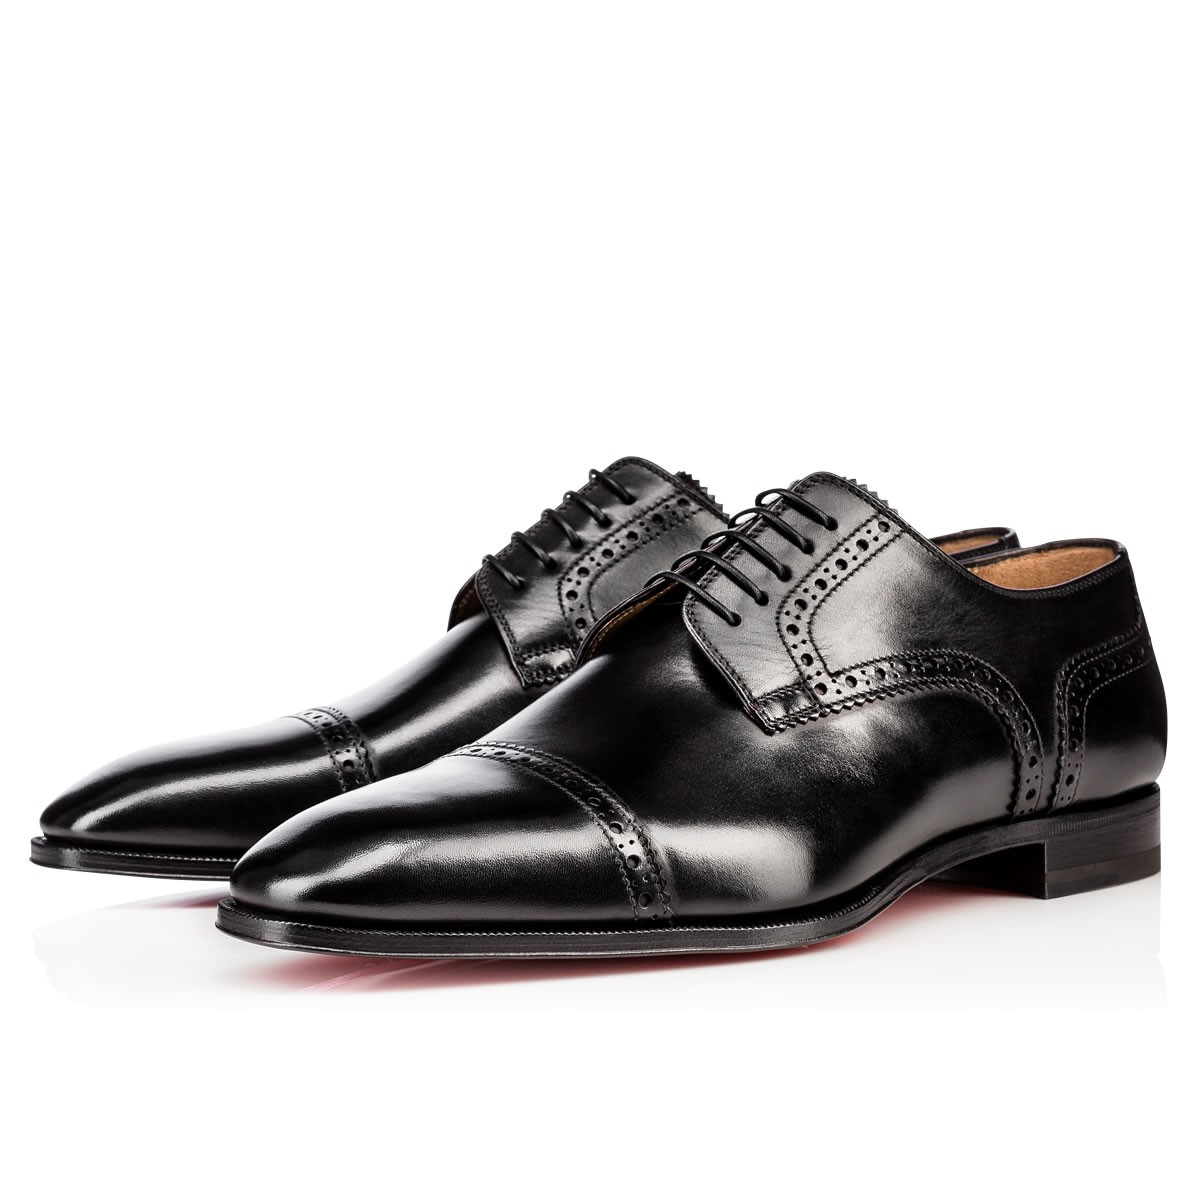 Cousin Charles Flat Black Leather - Men Shoes - Christian Louboutin